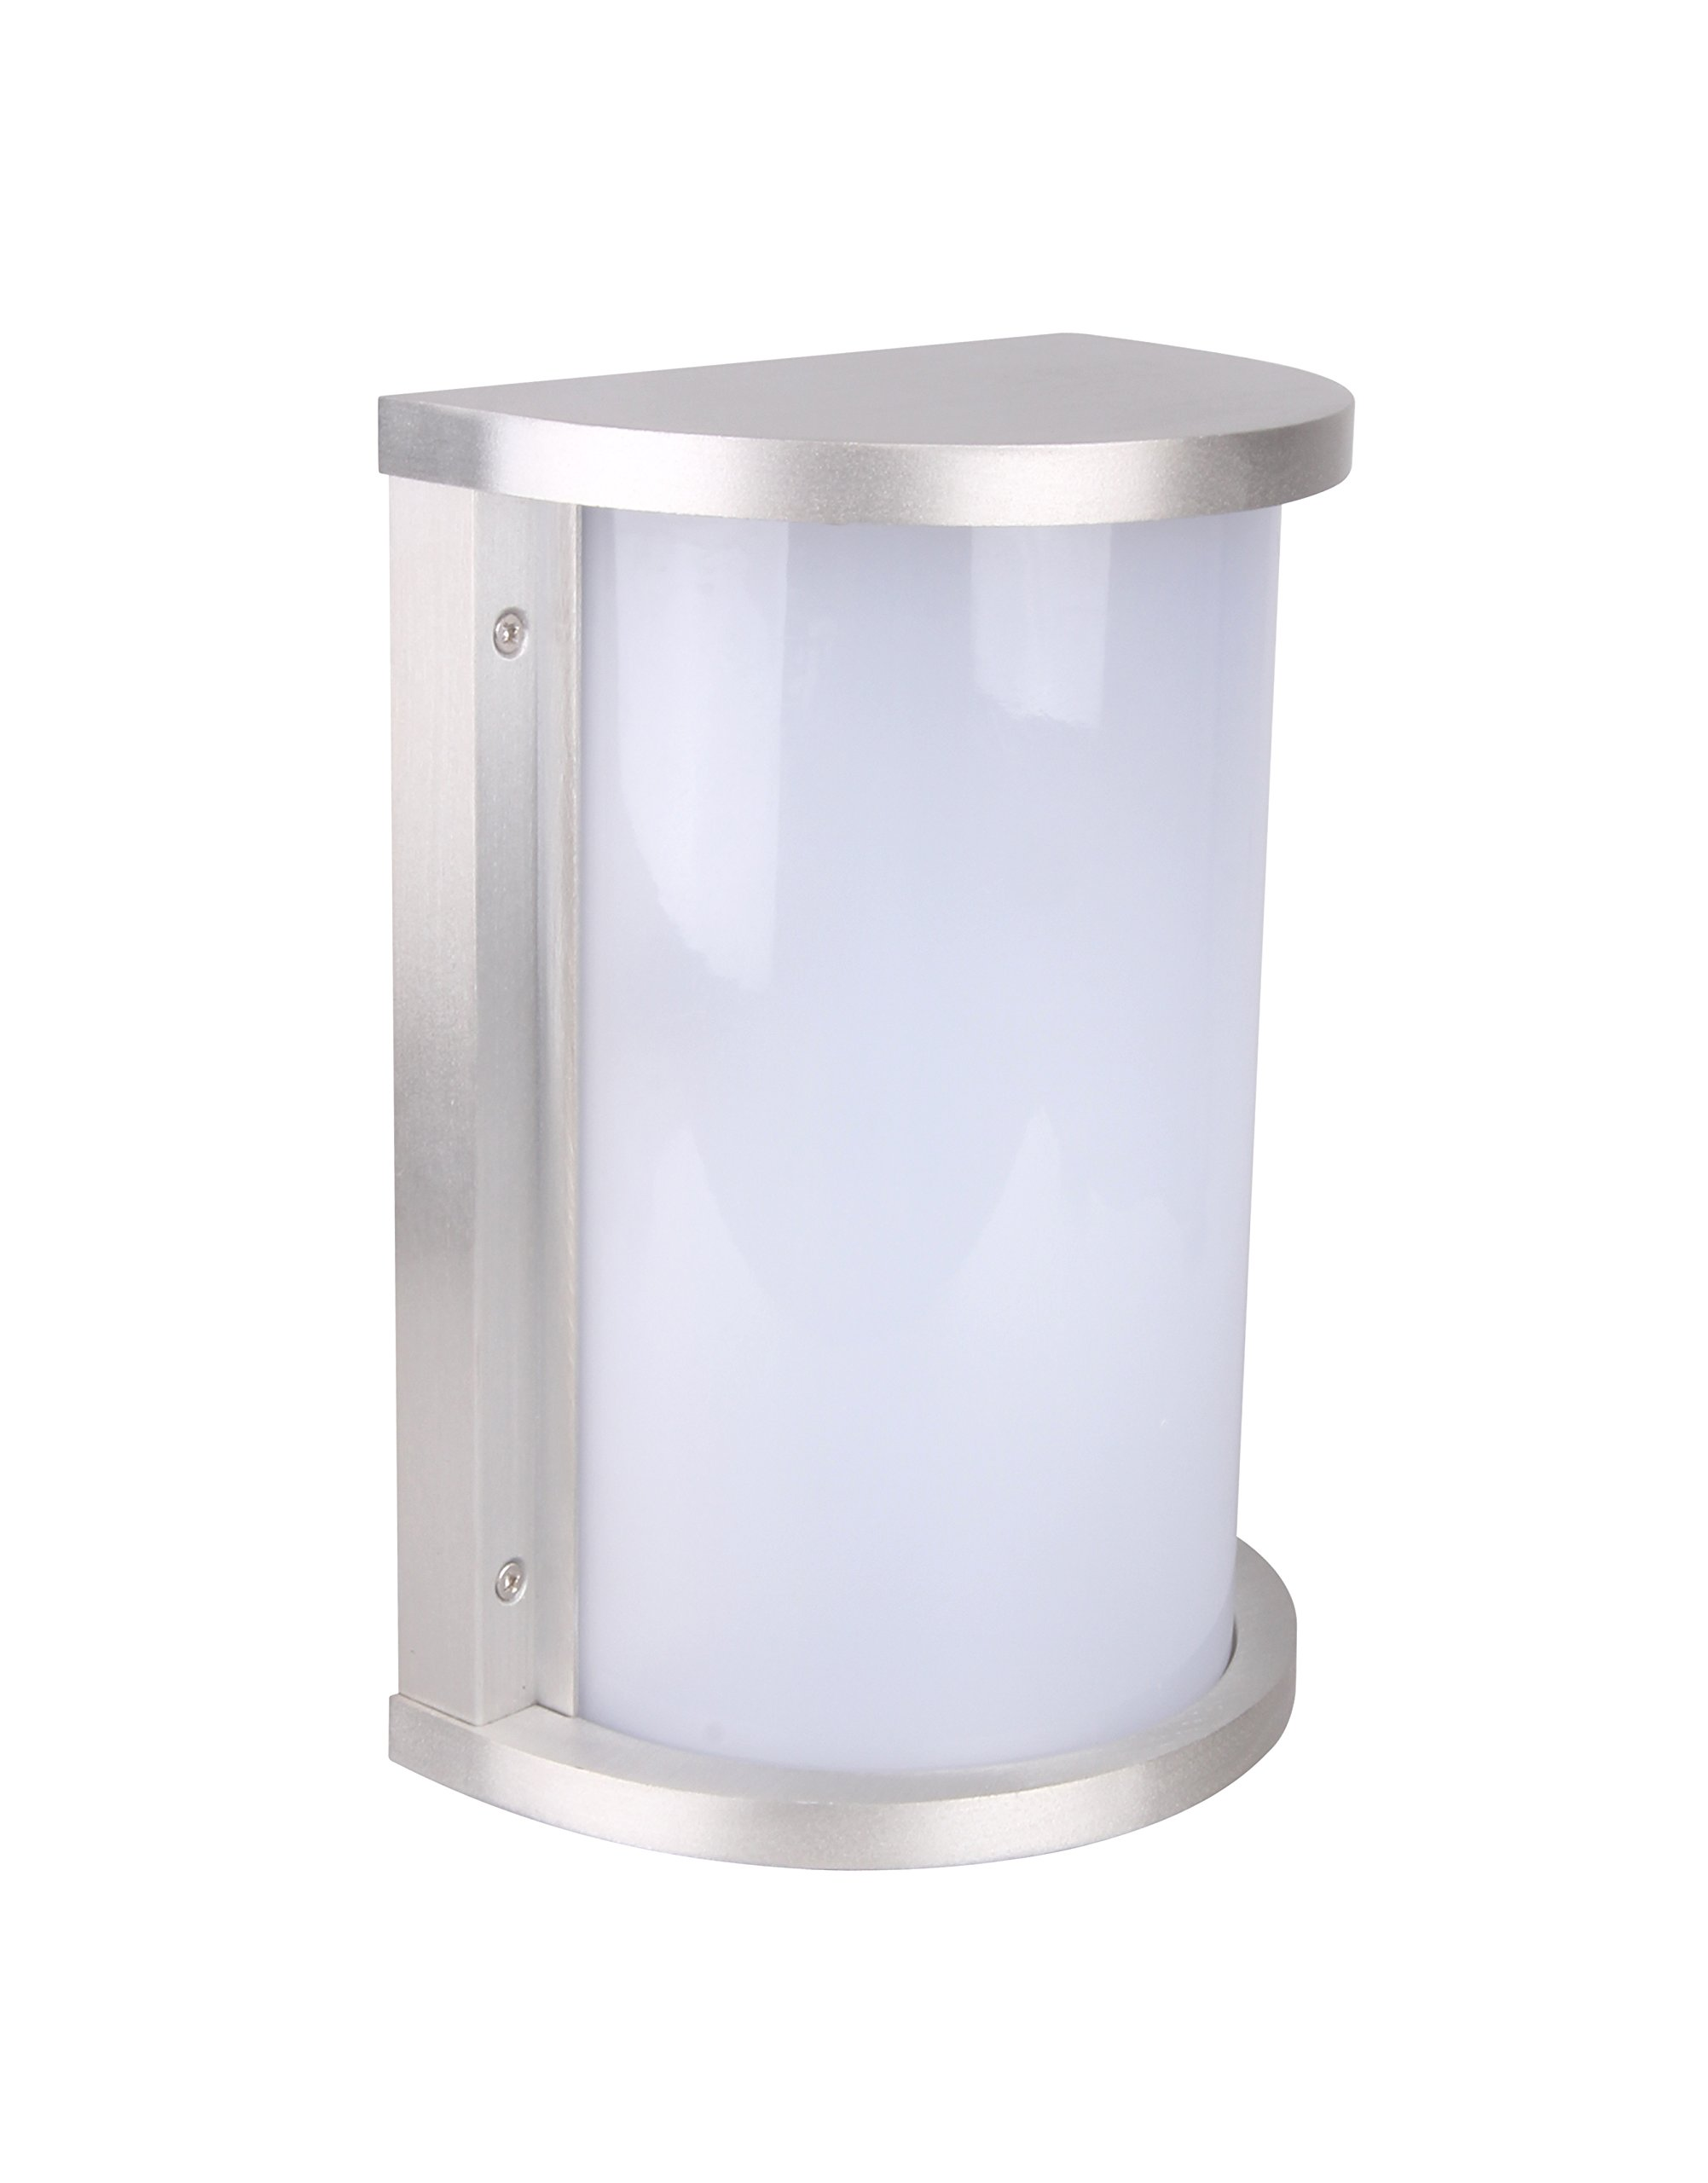 Lit-Path Outdoor/Indoor LED Wall Lantern, Wall Sconce as Porch Light Fixture, 12.5W (75W Equivalent), 950 Lumen, Aluminum Housing Plus PC, Water-Proof and Outdoor Rated, ETL and ES Qualified